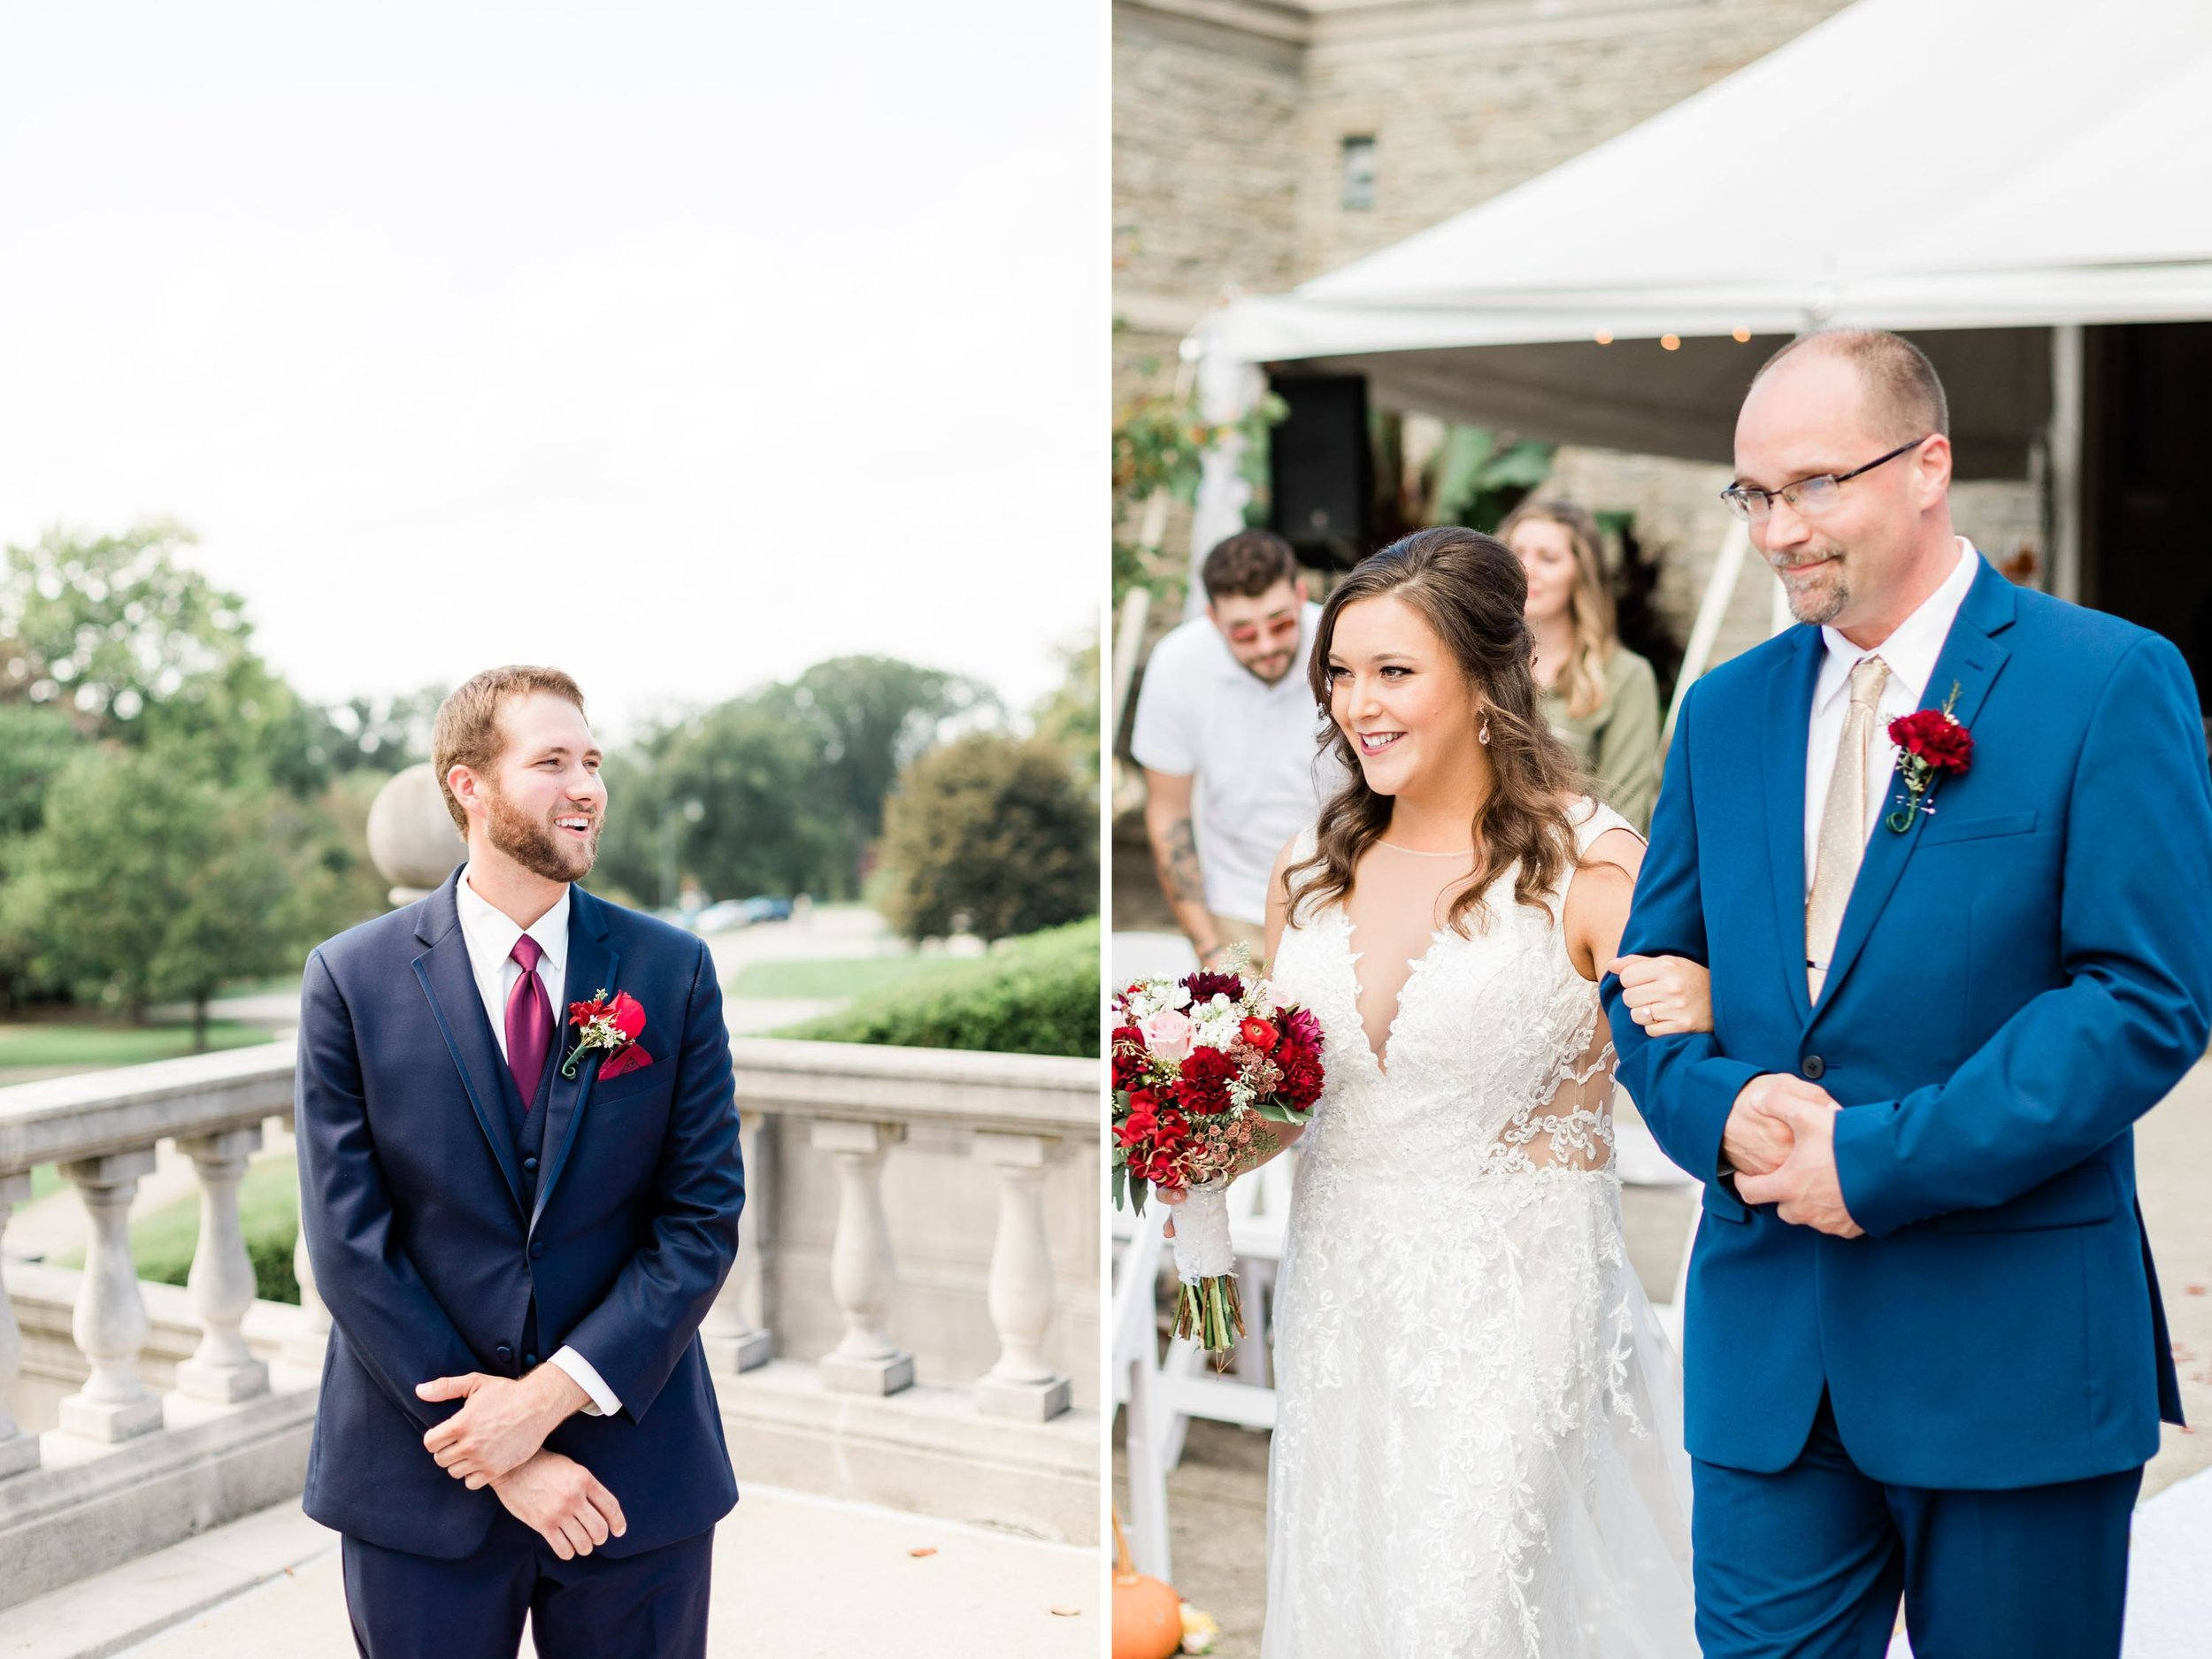 ault park wedding ceremony.jpg